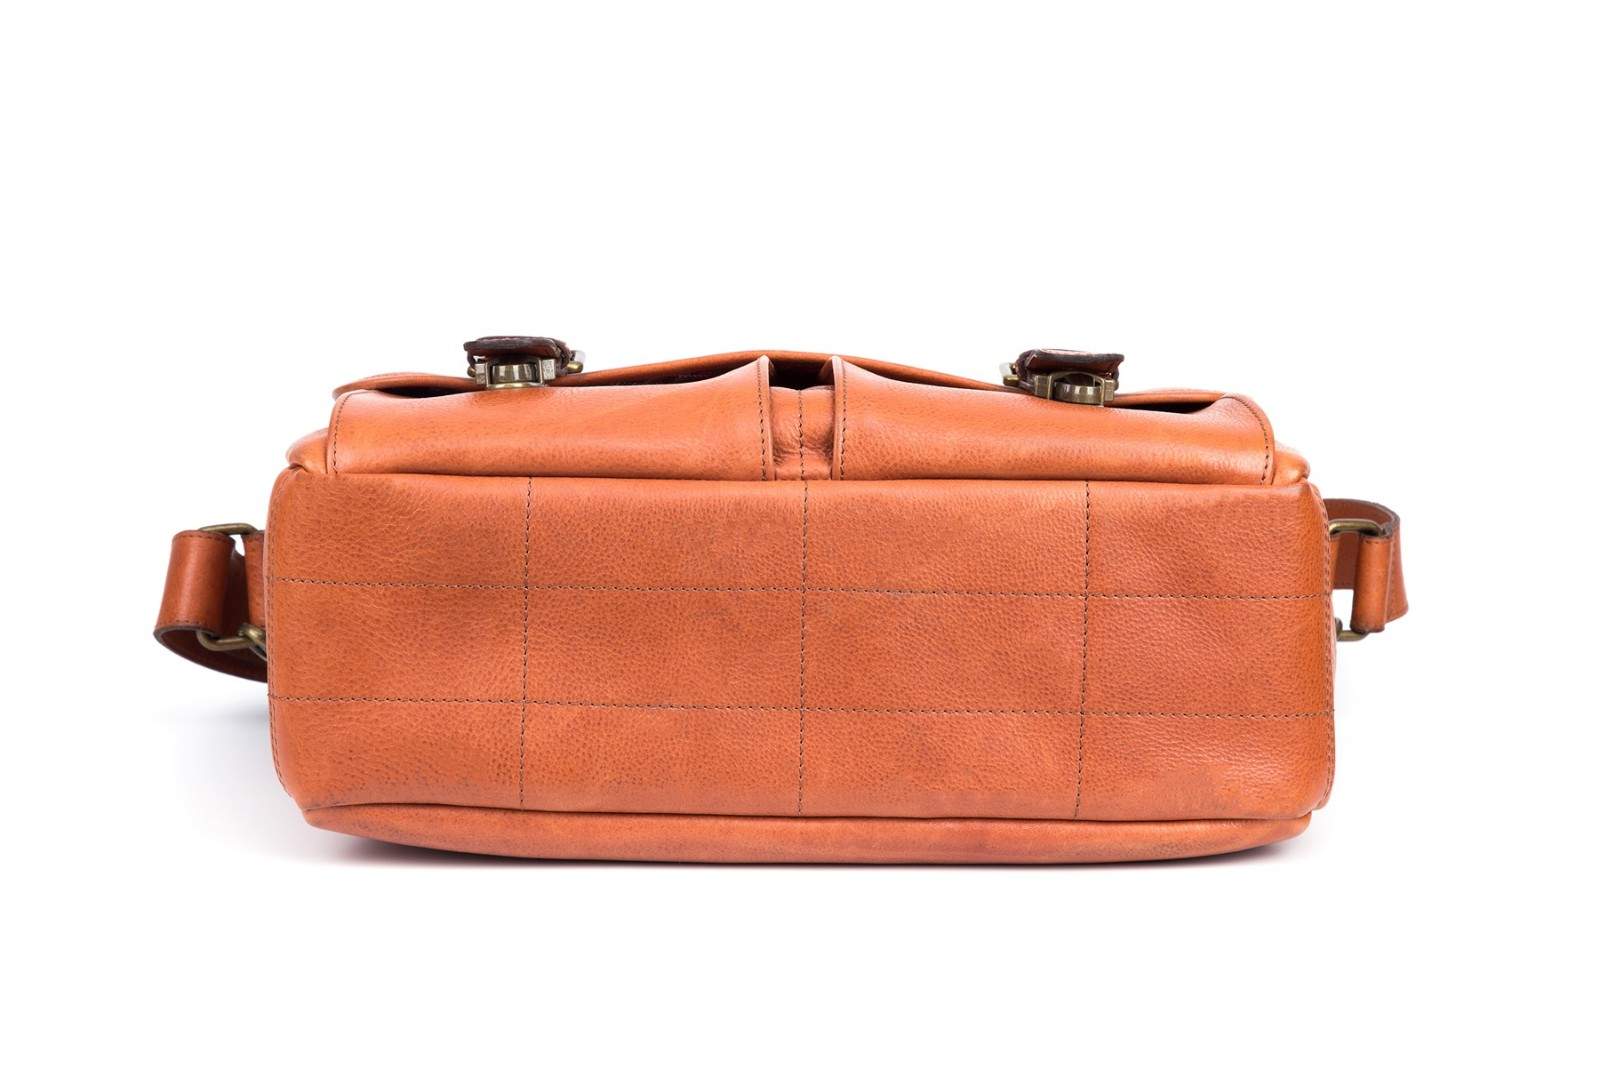 GF bags-High-quality Business Bag | Messenger Bags Leather Large Capacity Cover Style-6